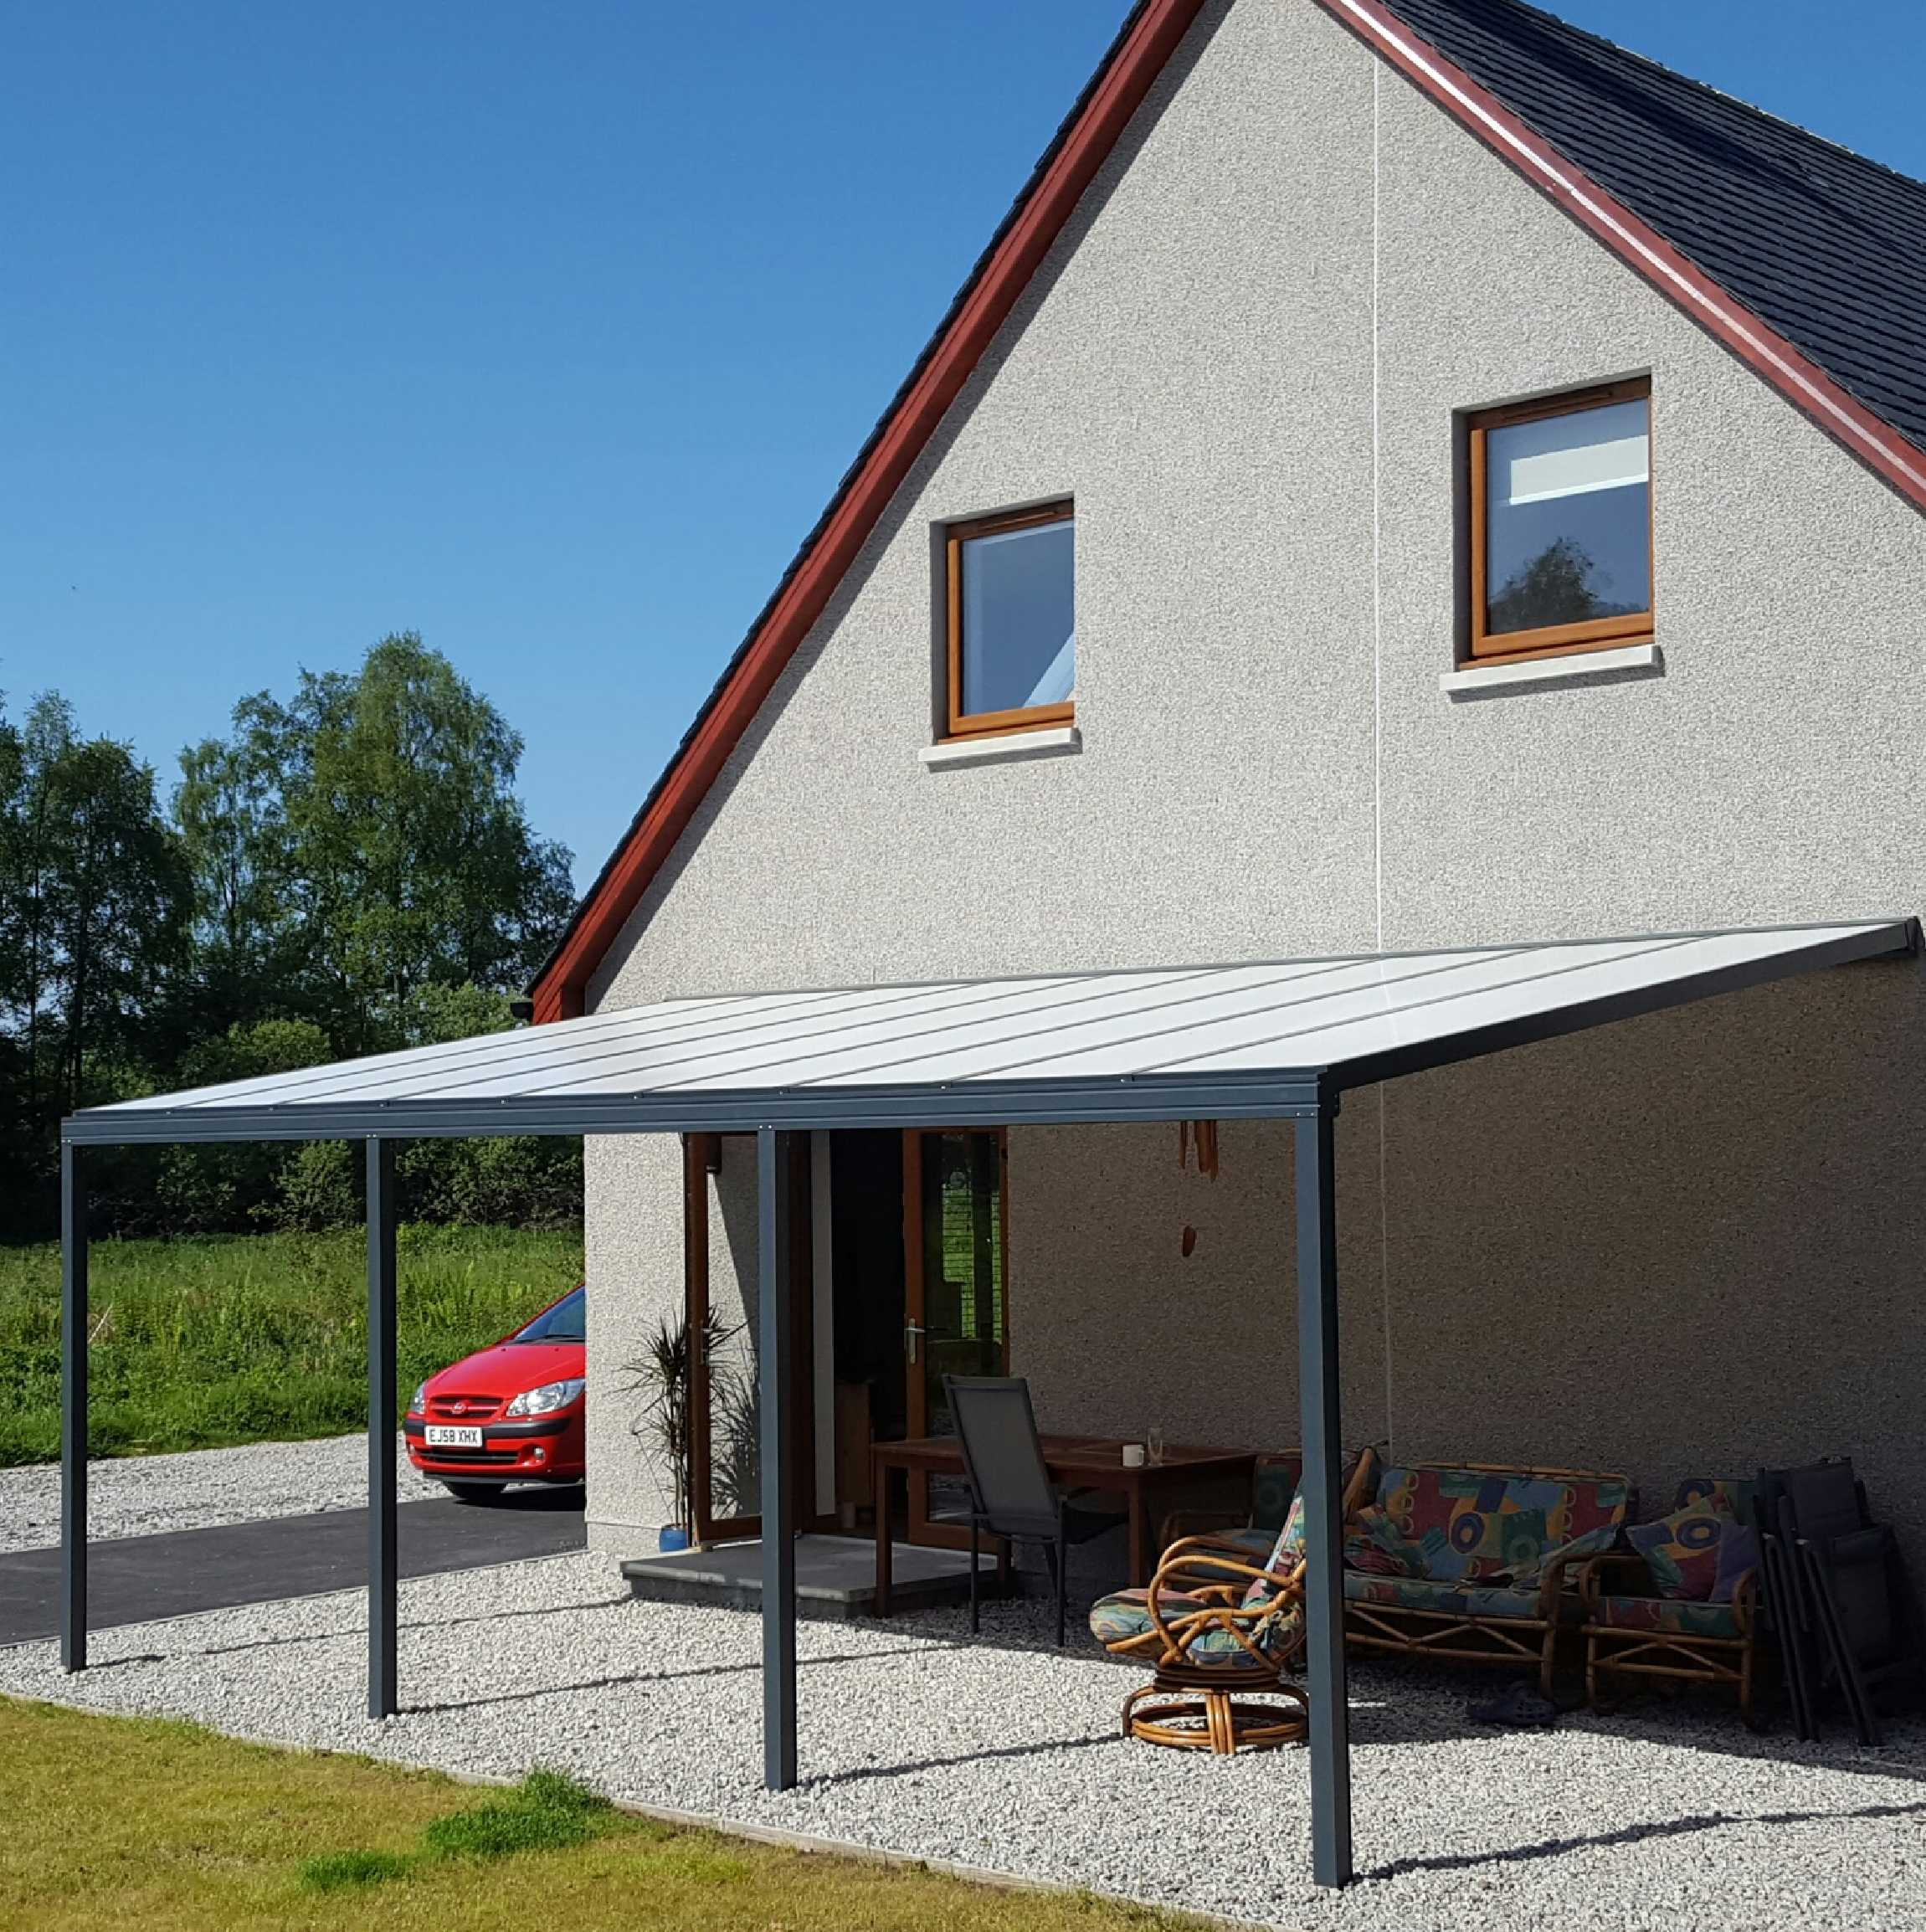 Great selection of Omega Smart Lean-To Canopy, Anthracite Grey, 16mm Polycarbonate Glazing - 8.4m (W) x 3.0m (P), (4) Supporting Posts